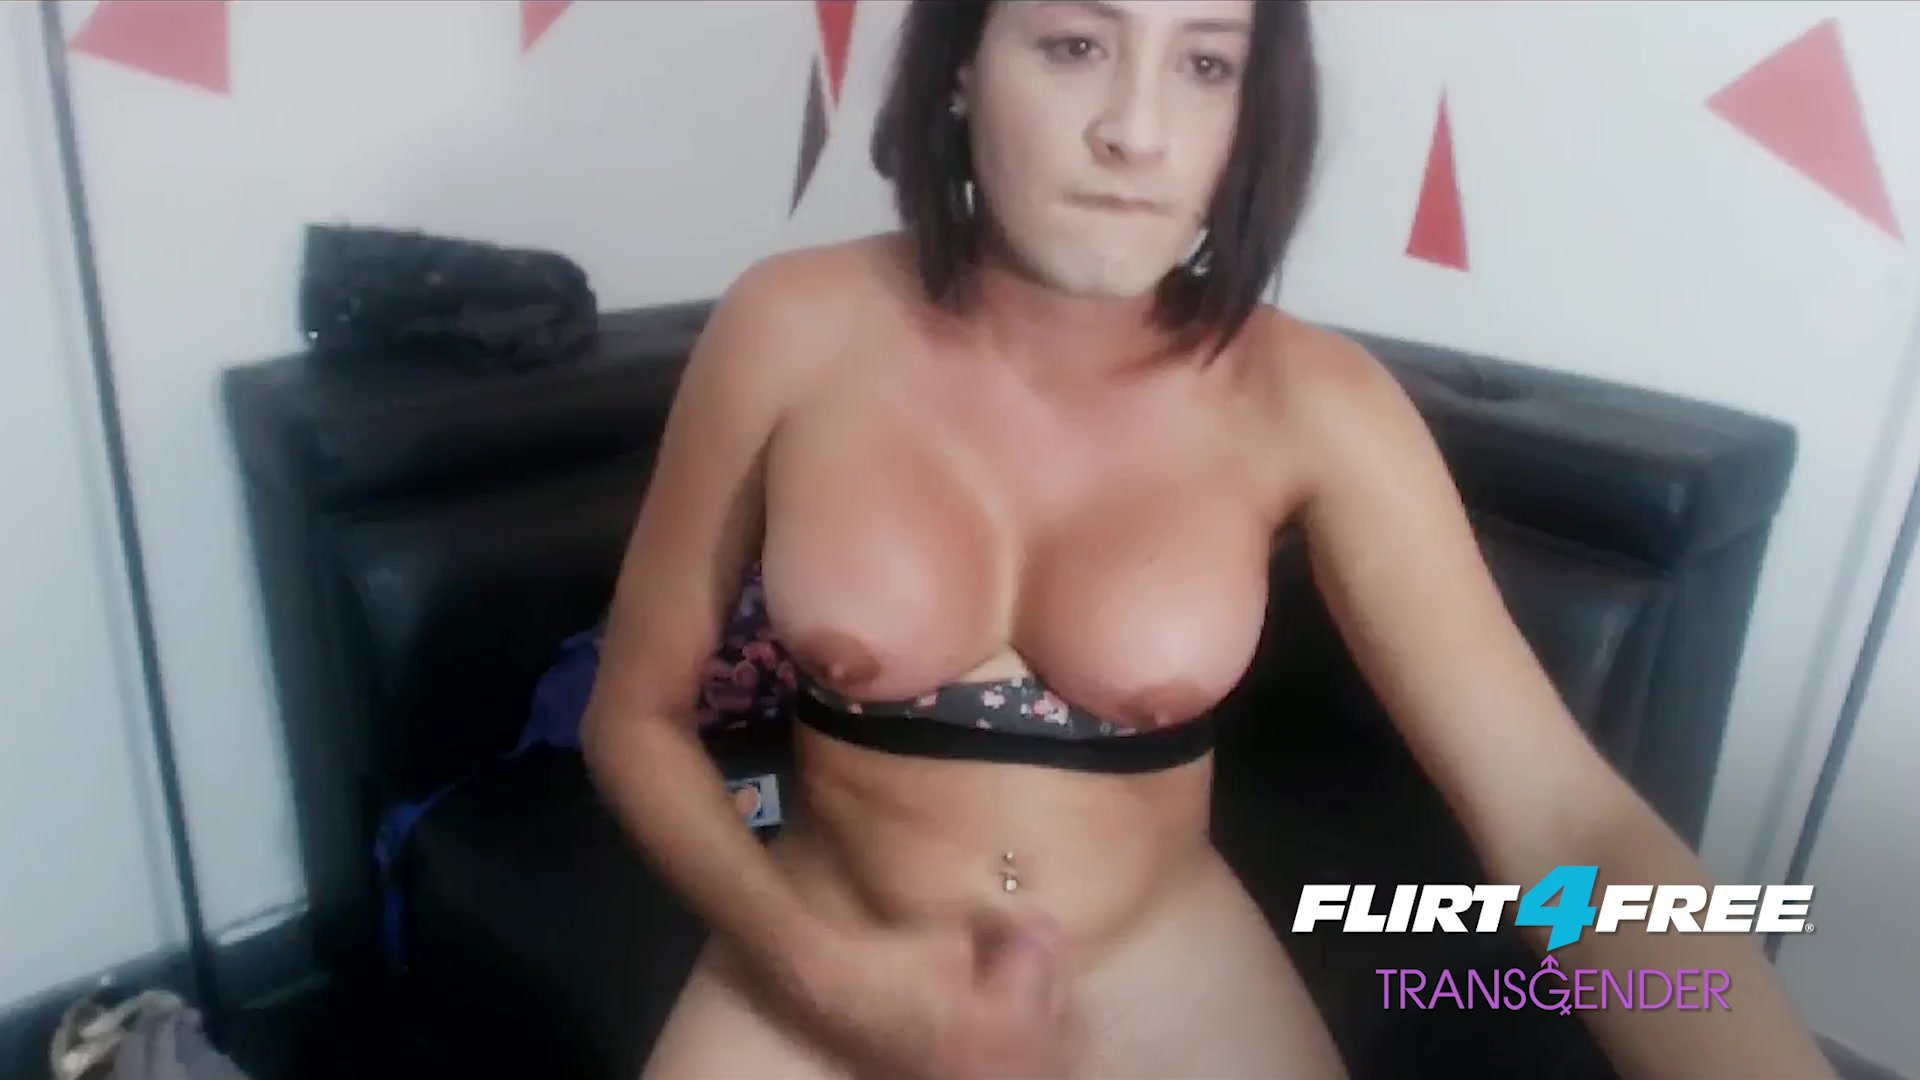 Nicolle Sessy on Flirt4Free Transgender - Big Titted Babe Drops a Big Load